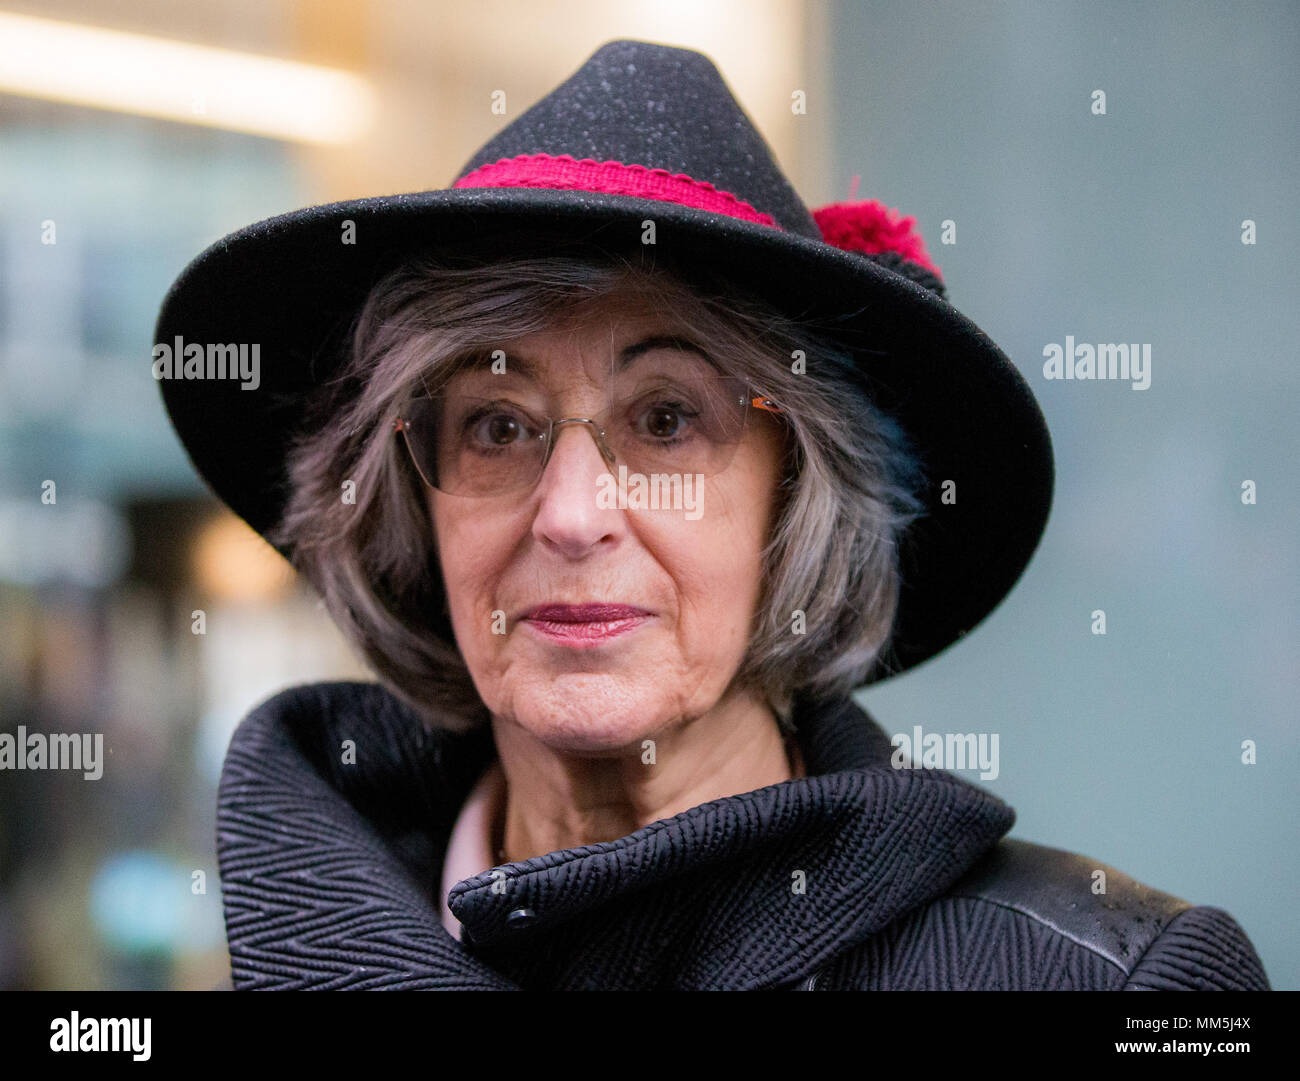 Amid disputes over the Labour party's handling of claims of anti-semitism, Campaign Against Antisemitism stage demonstration at Labour Party head office in Victoria.  Featuring: Maureen Lipman Where: London, England, United Kingdom When: 08 Apr 2018 Credit: Wheatley/WENN - Stock Image